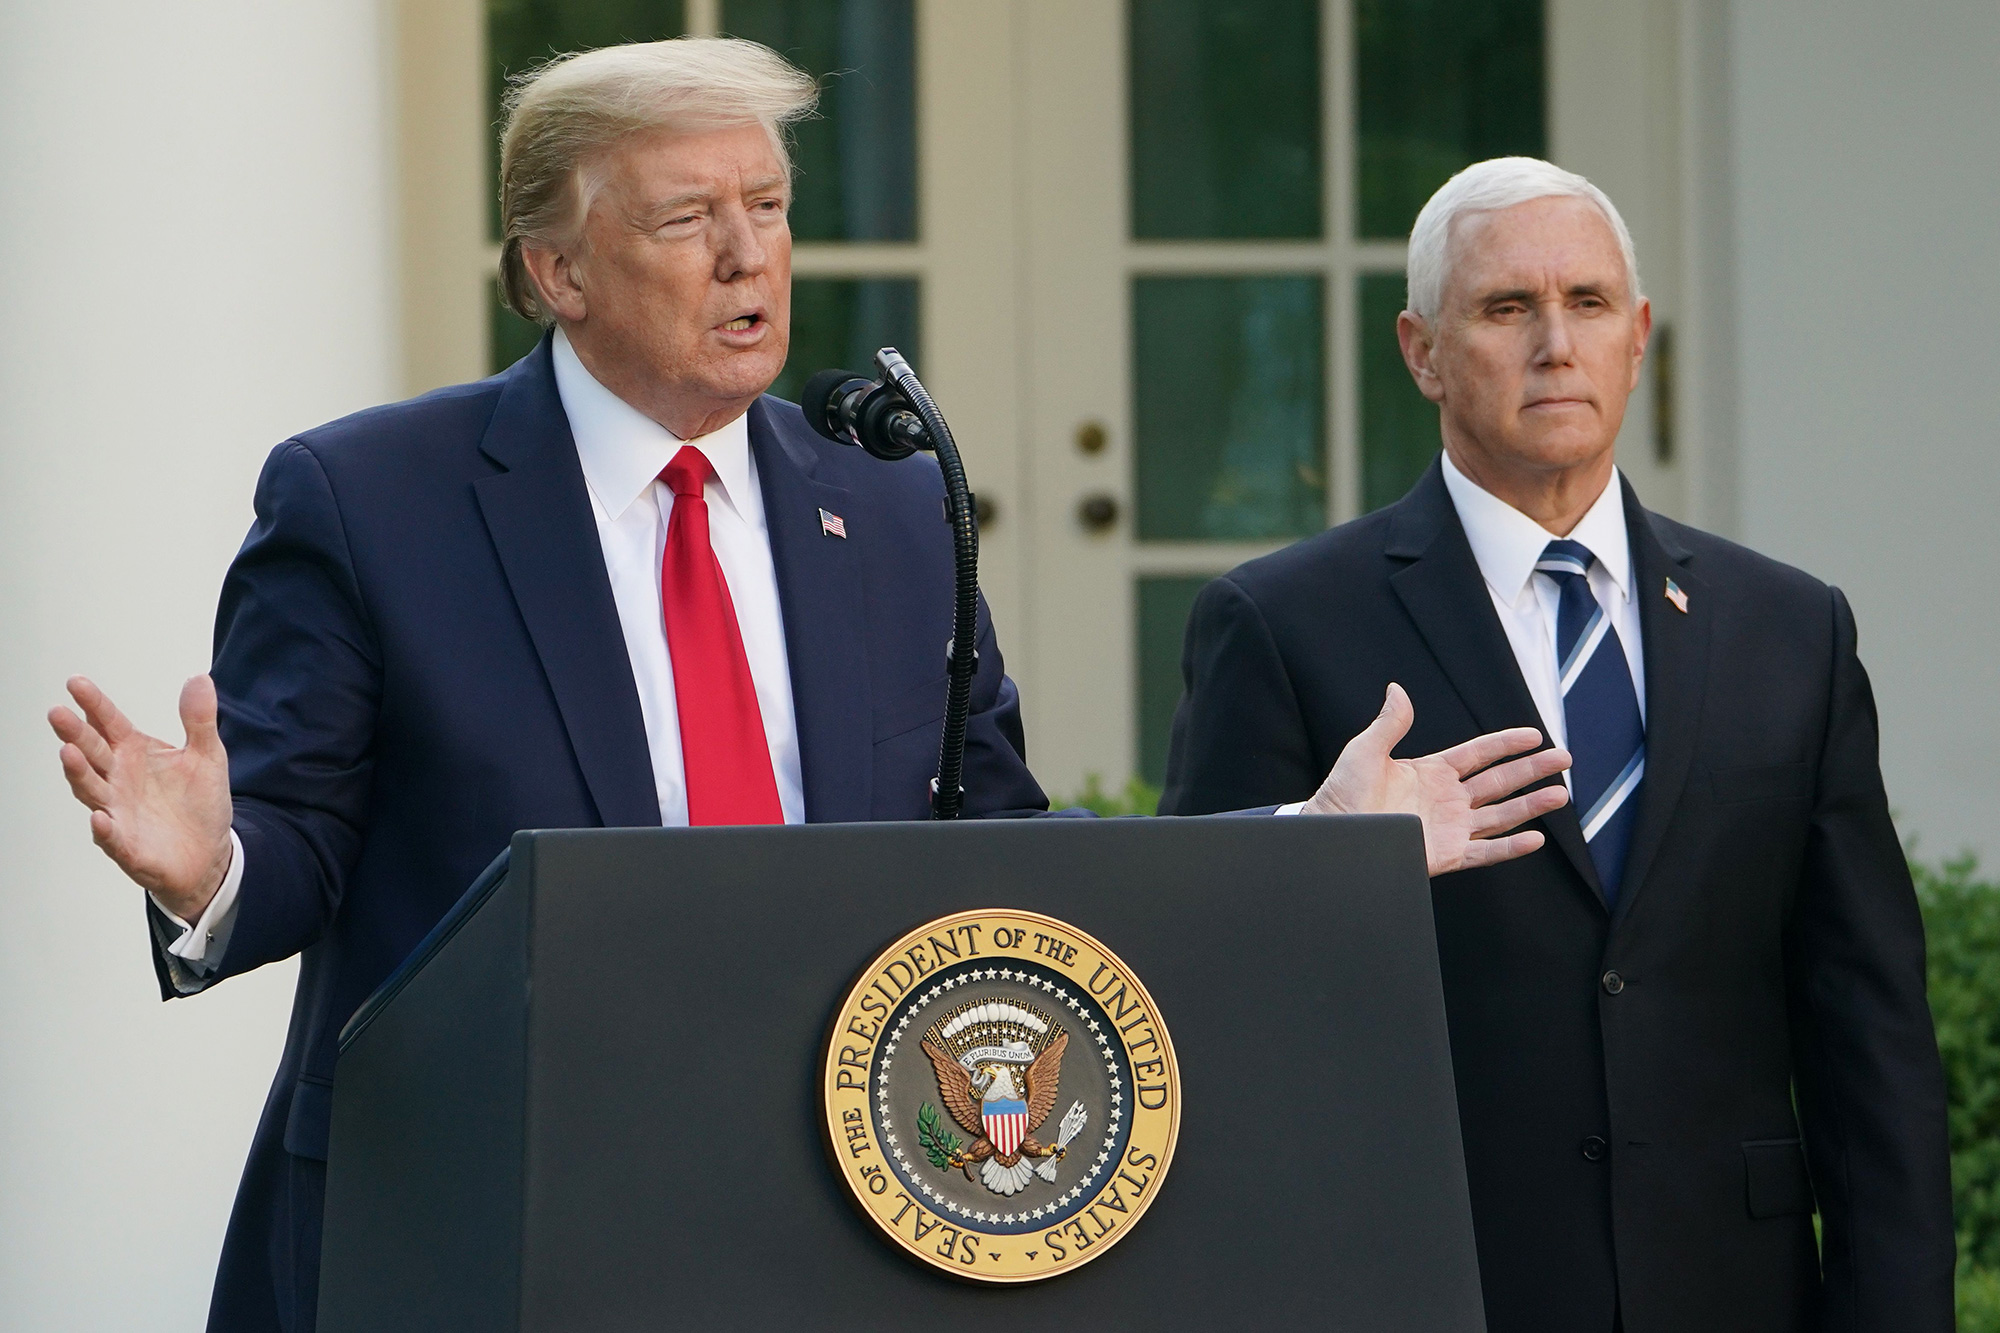 US President Donald Trump speaks as US Vice President Mike Pence looks on